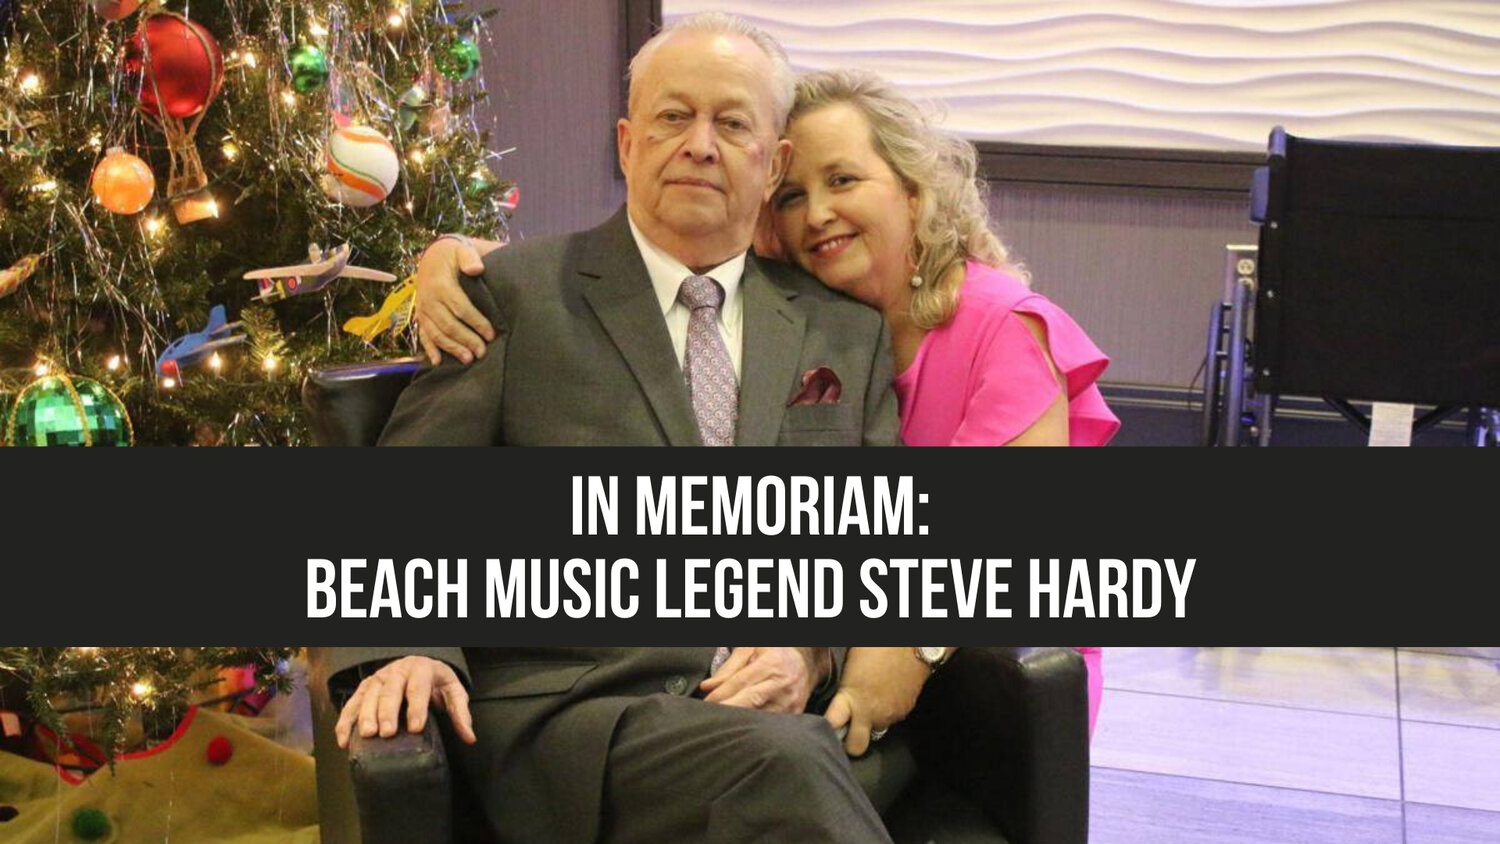 In Memoriam: Beach music legend Steve Hardy